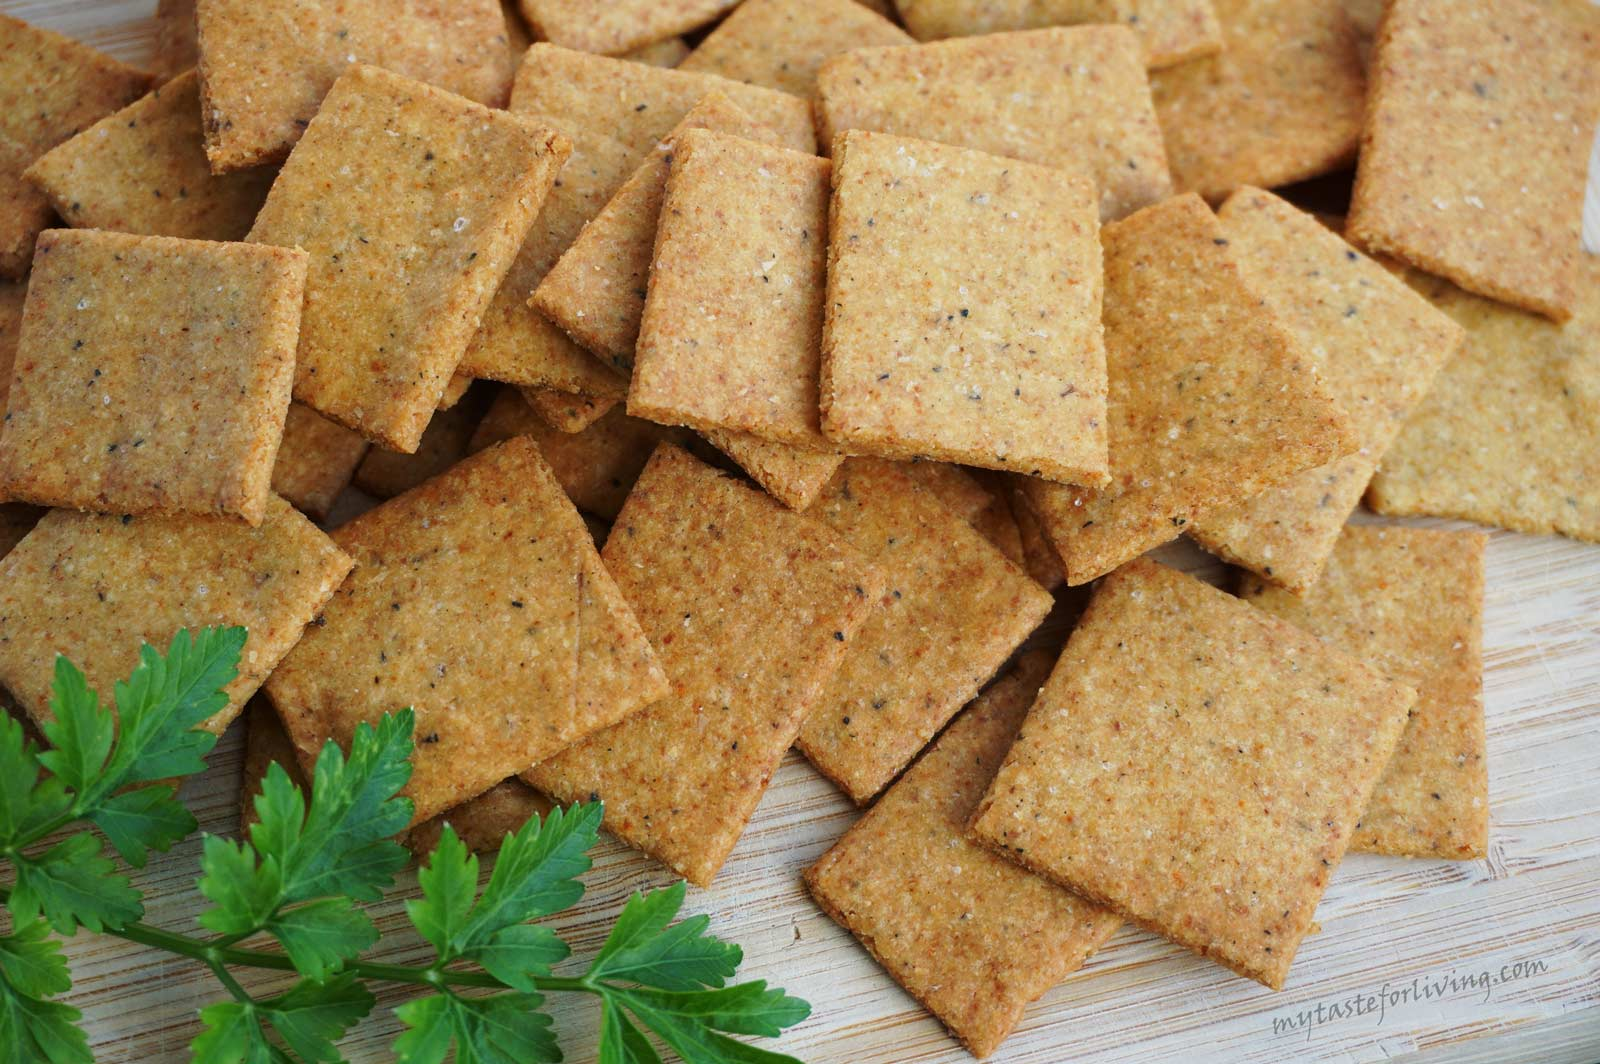 Quick, delicious and crispy crackers made of chickpea flour, which we adore at home. You can add savory, basil or parsley for a stronger flavor. The thinner you roll them, the crispier and tastier they turn out!